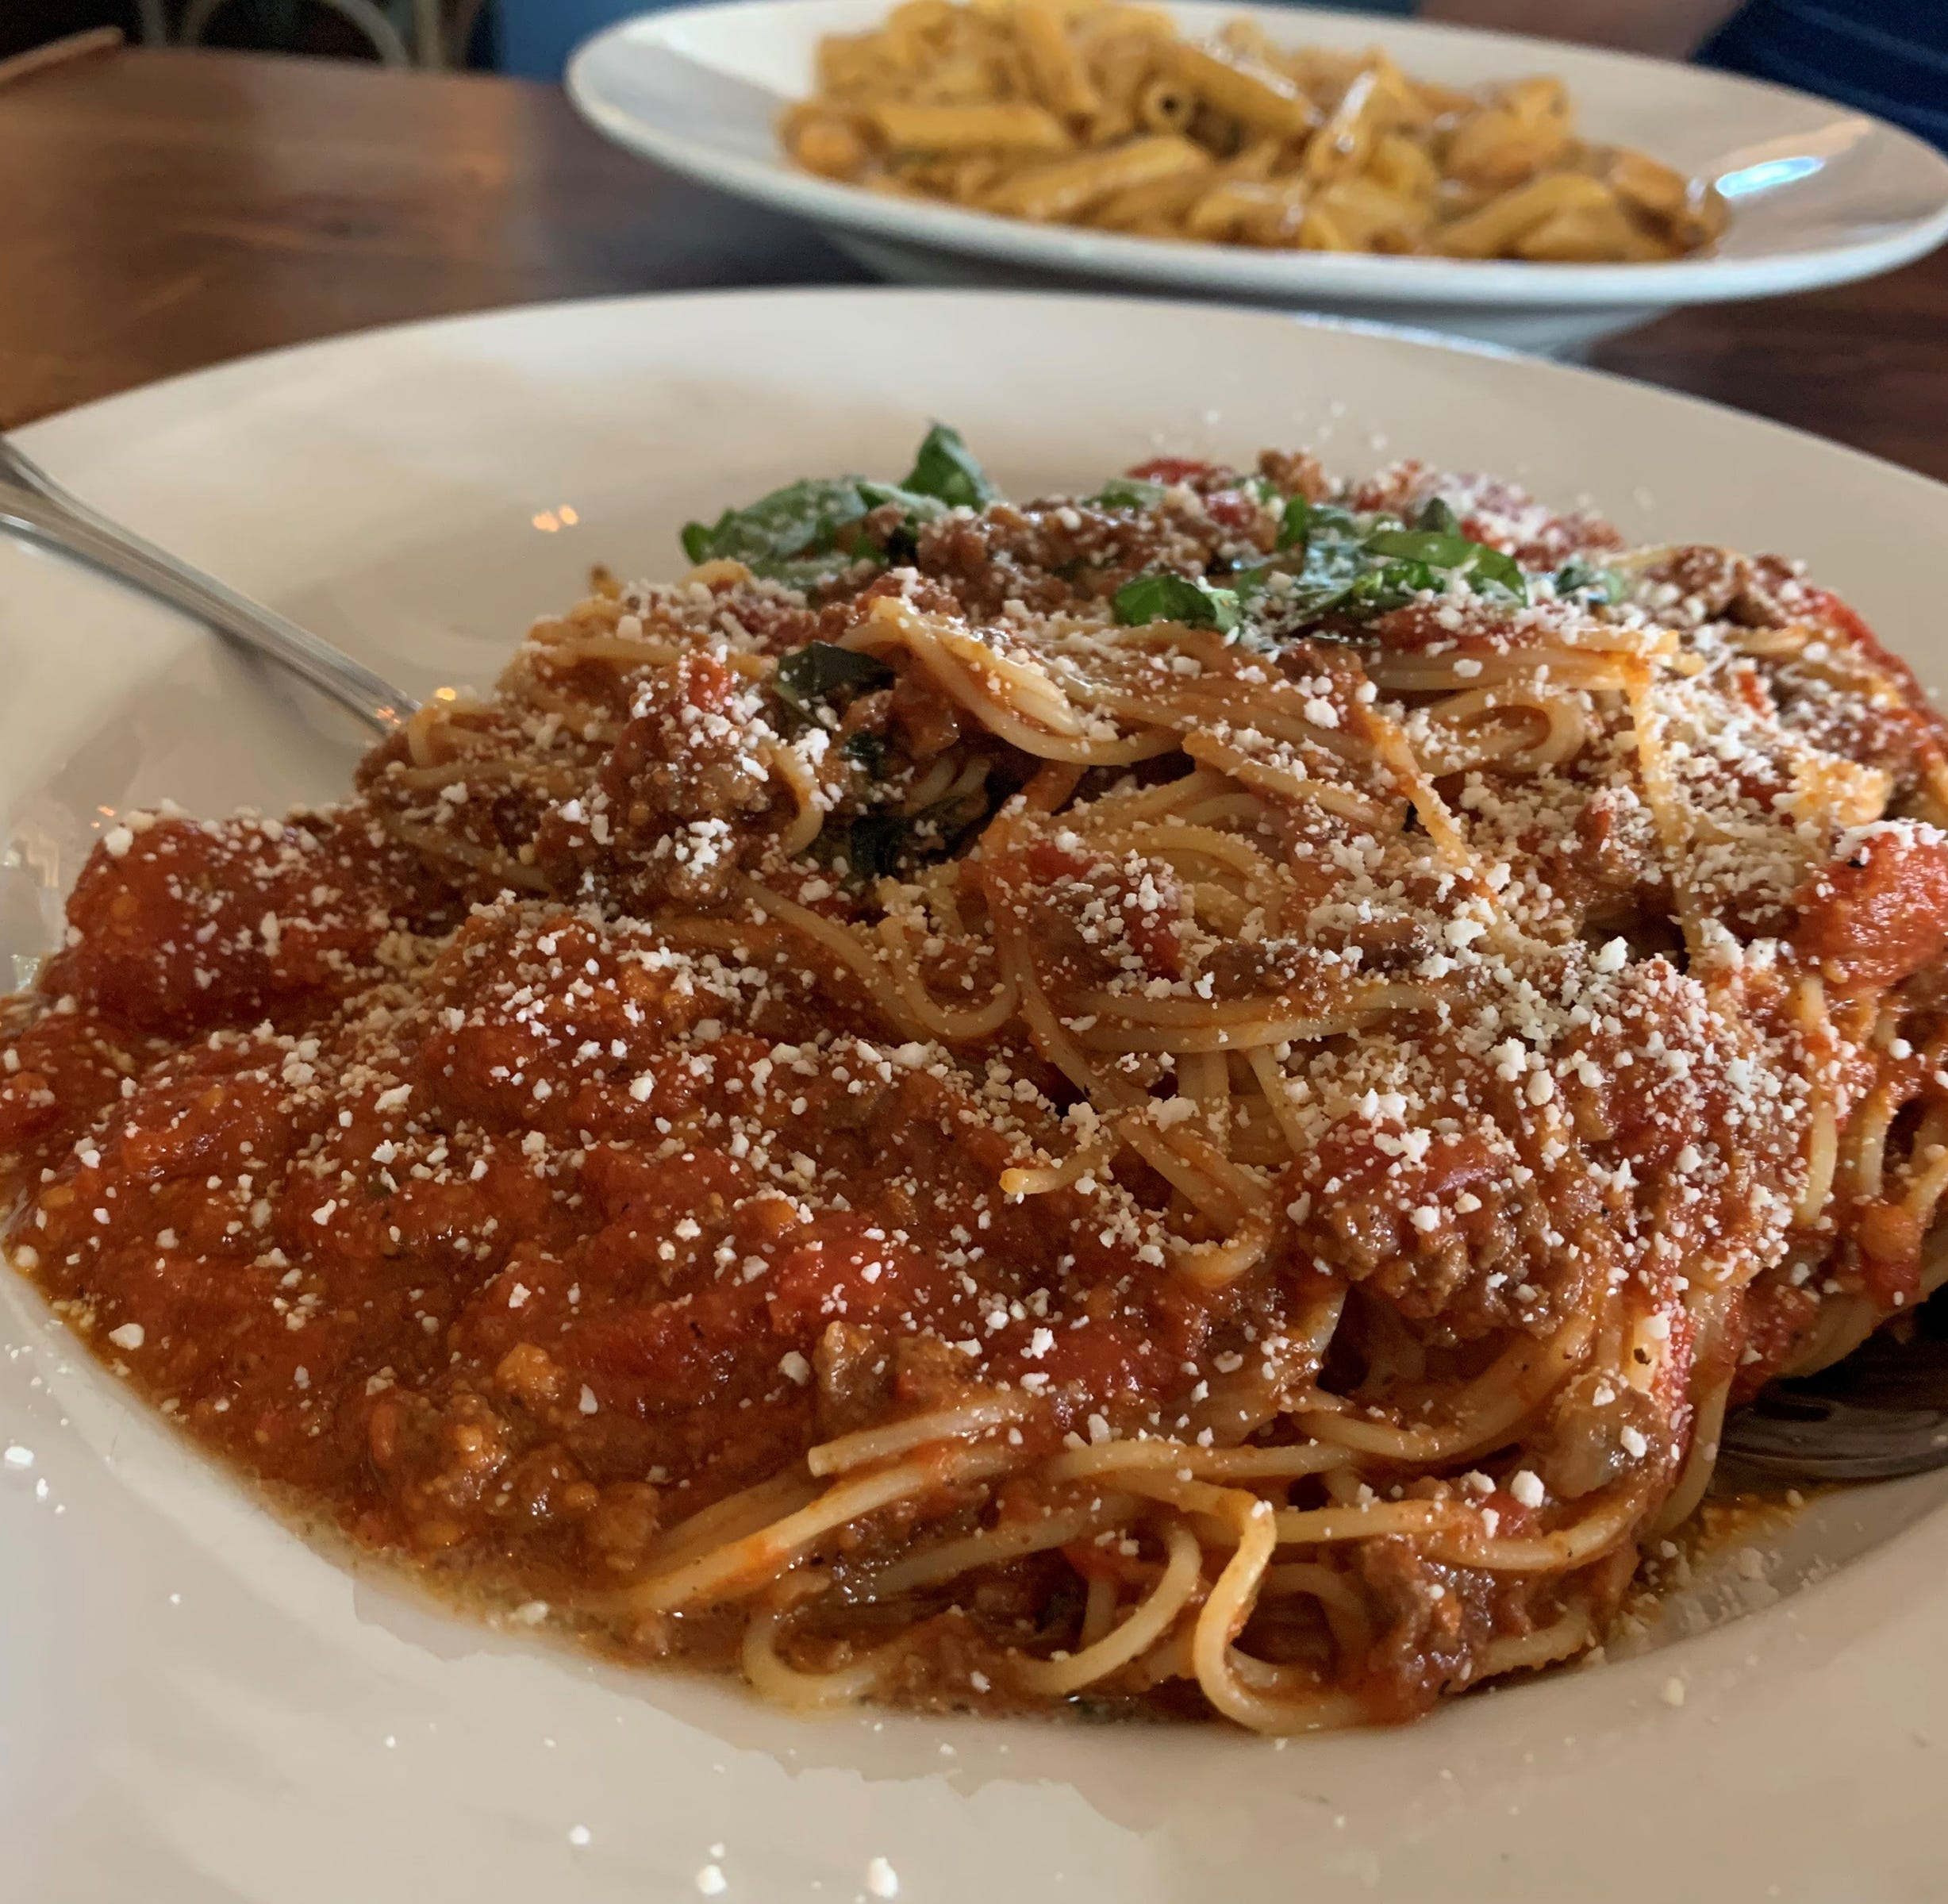 'Watts for Dinner': Joey's offers generous portions, fresh flavor